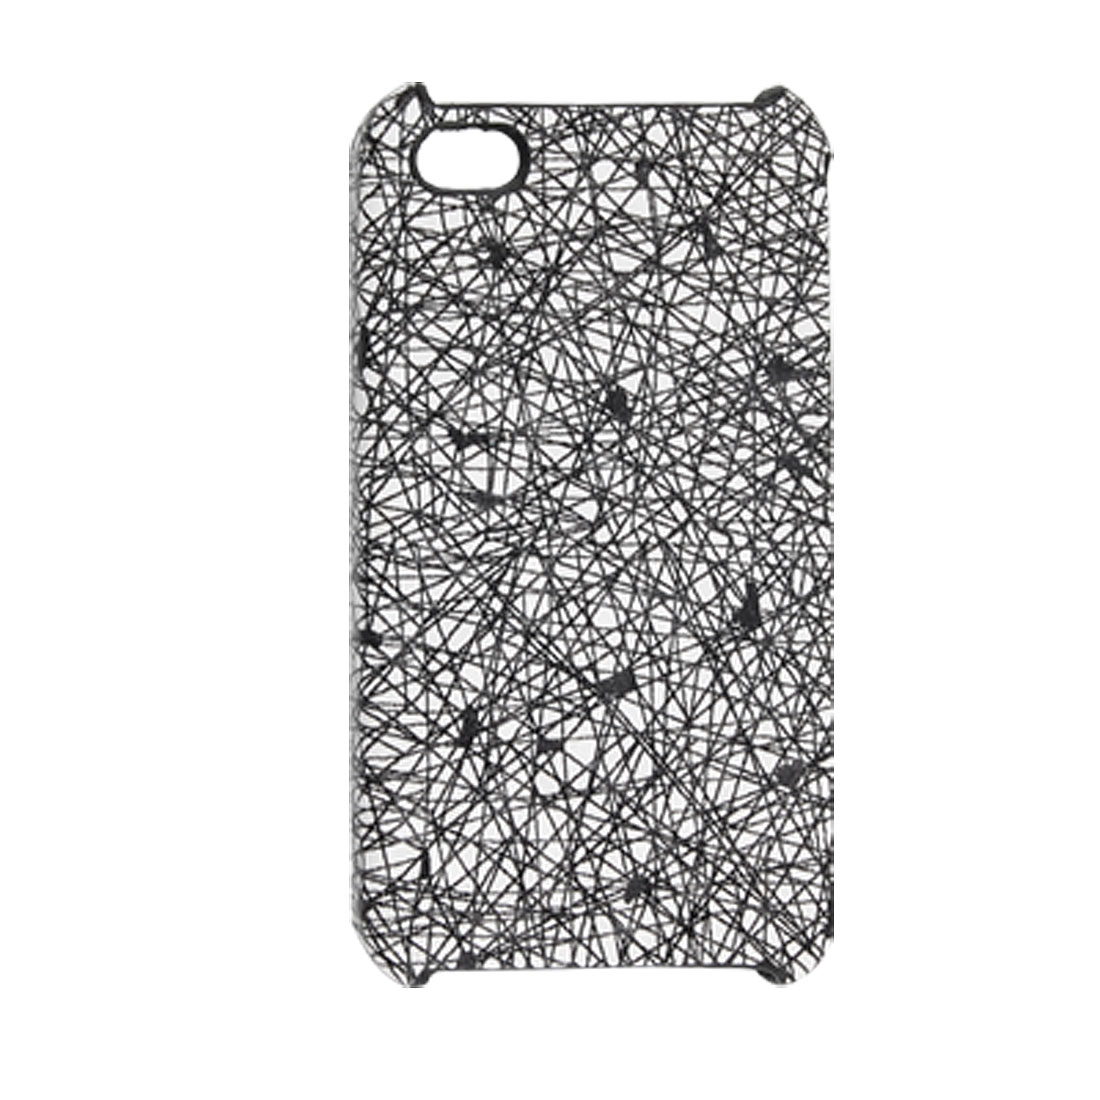 White Black Hard Nonslip Case Plastic Cover for iPhone 4 4G